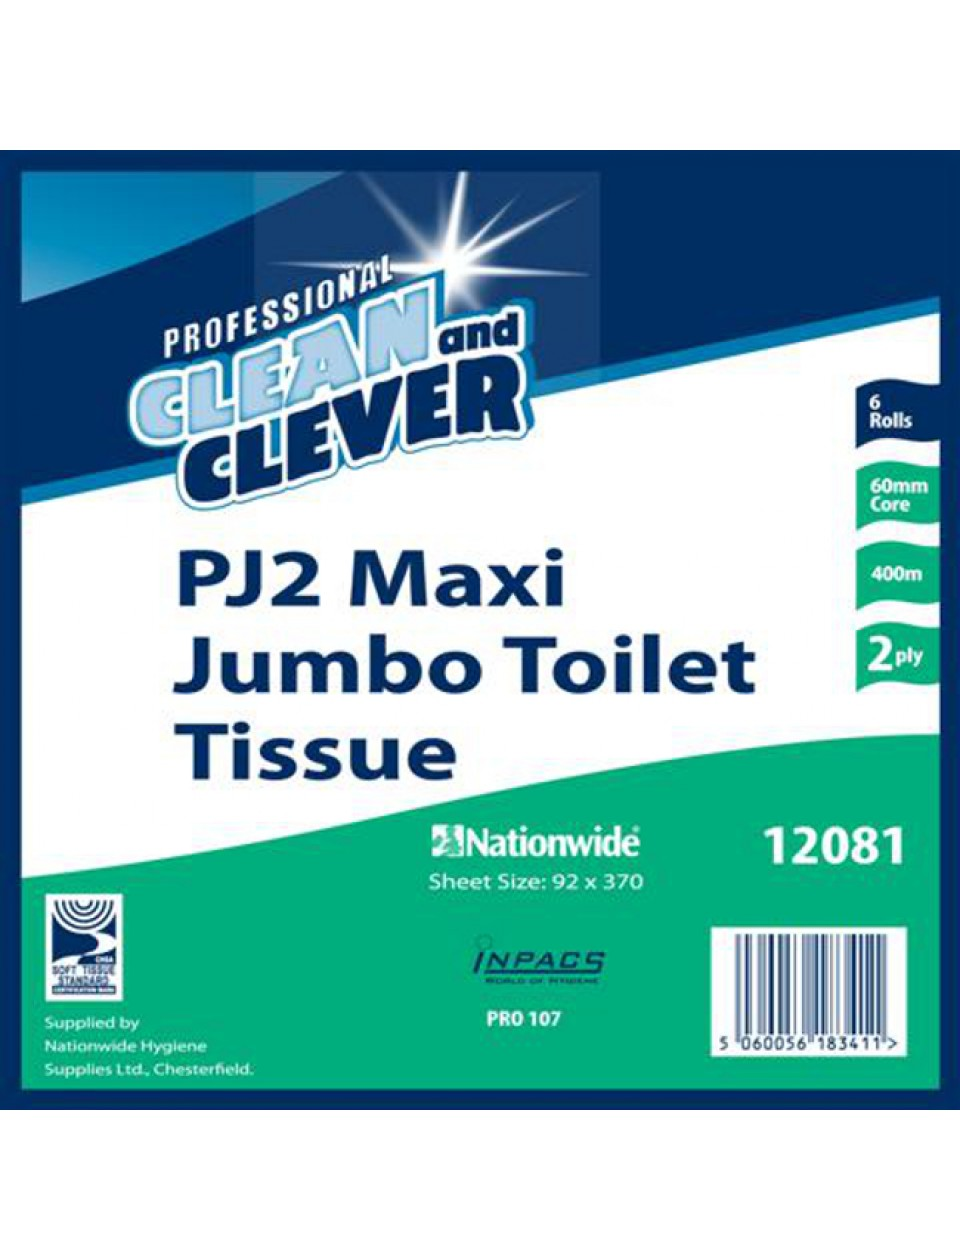 Maxi Jumbo Toilet Roll 12081- Pack of 6 Hygiene